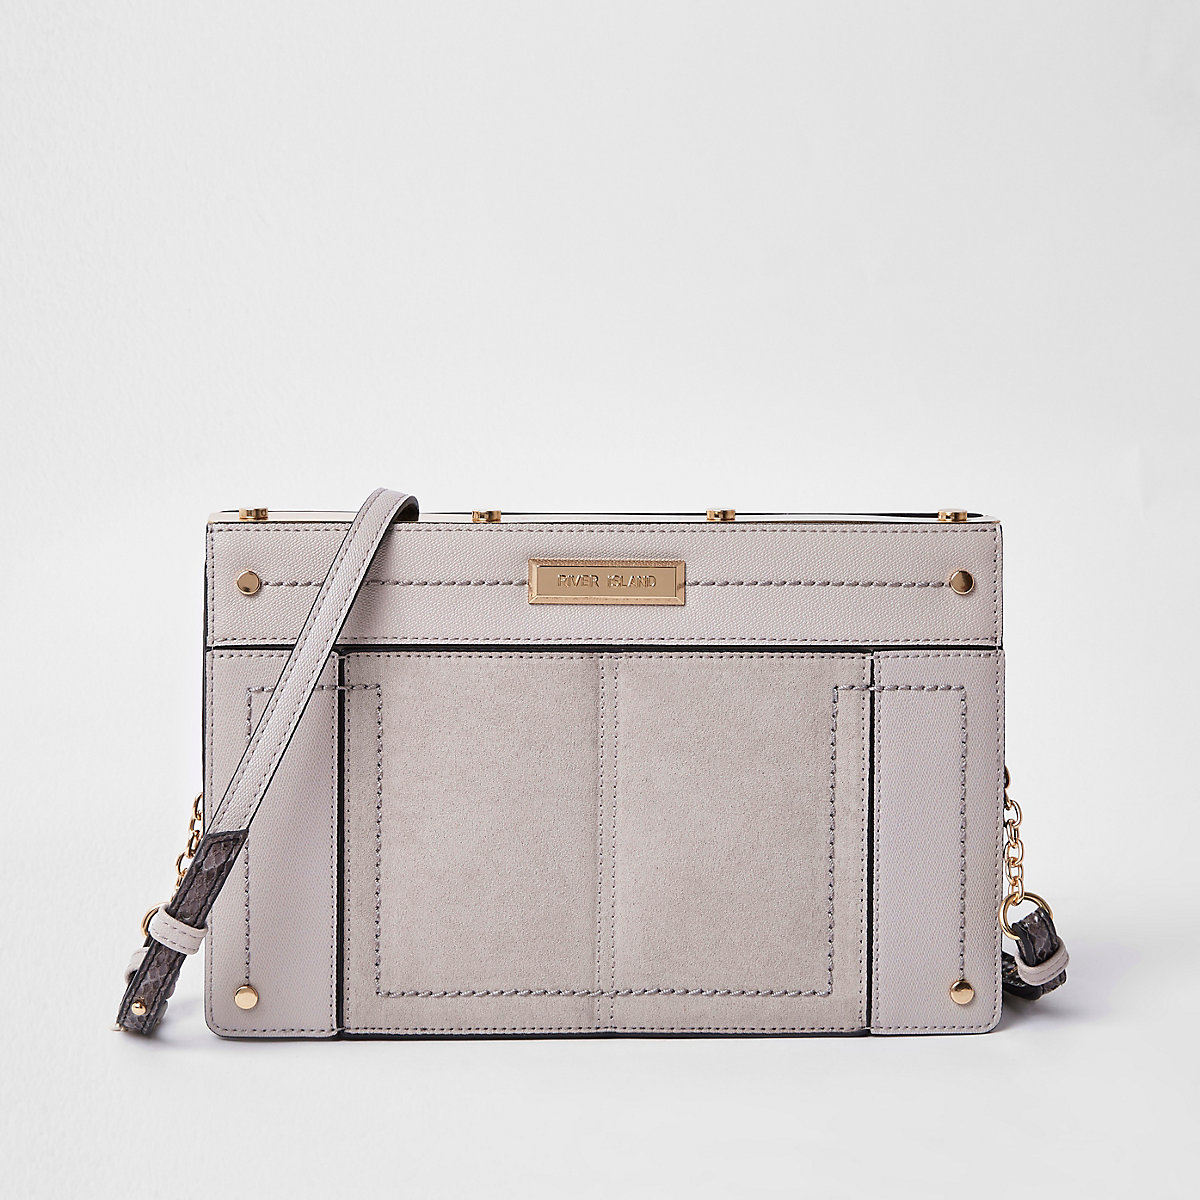 Light grey small metal boxy cross body bag